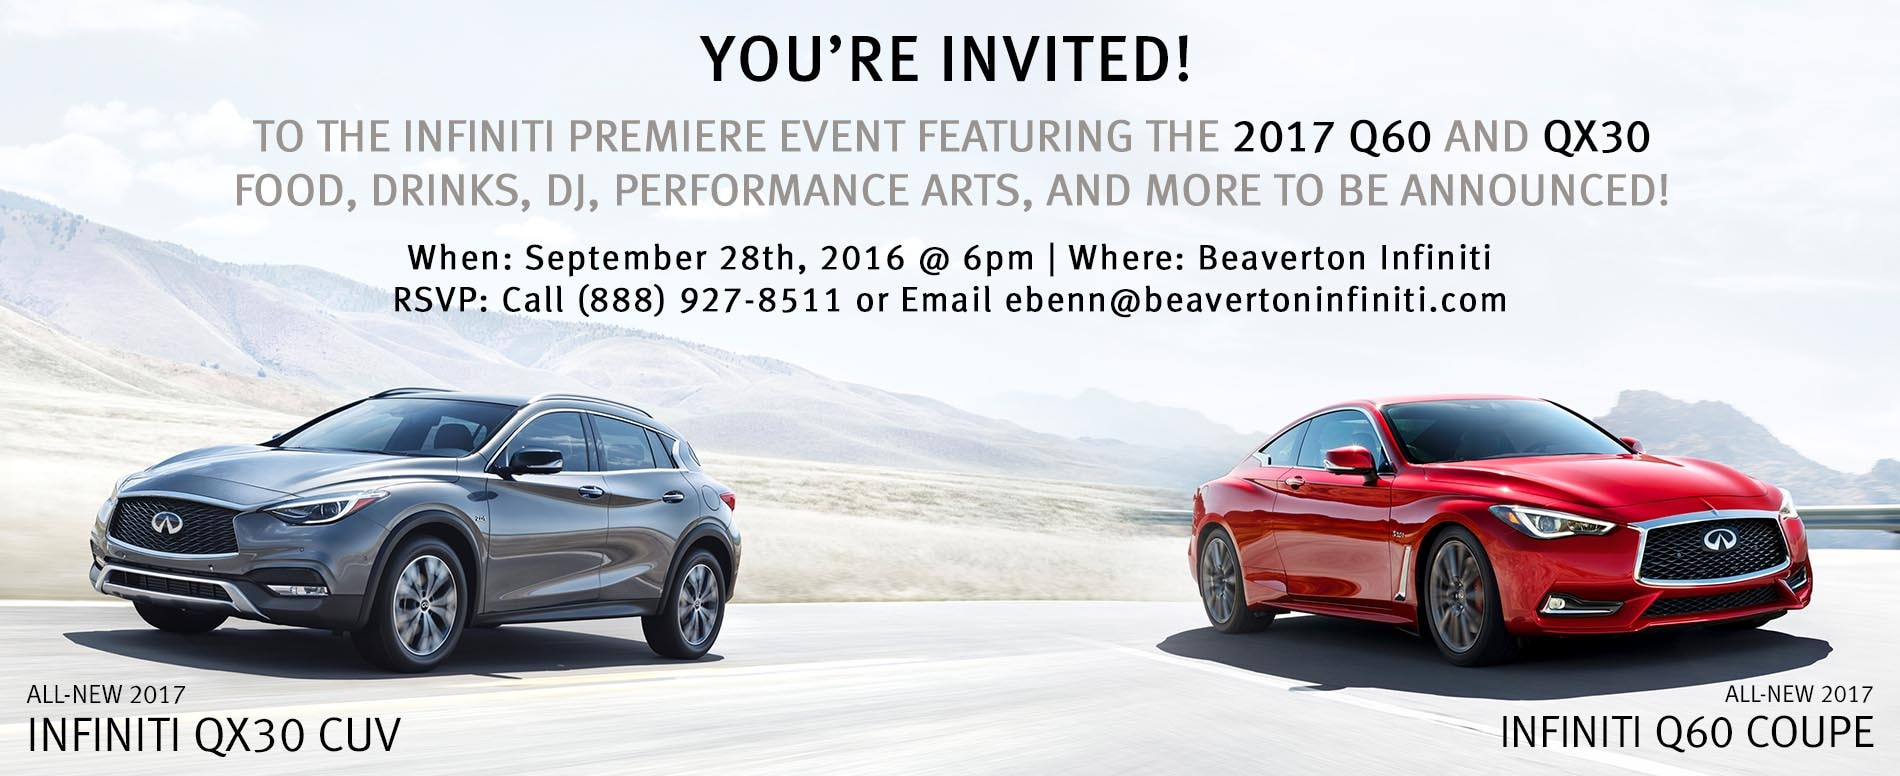 Save the date for the Infiniti Premiere Event featuring the all-new Q60 and first-ever QX30 on Sept 28th, 2016 - Click for details